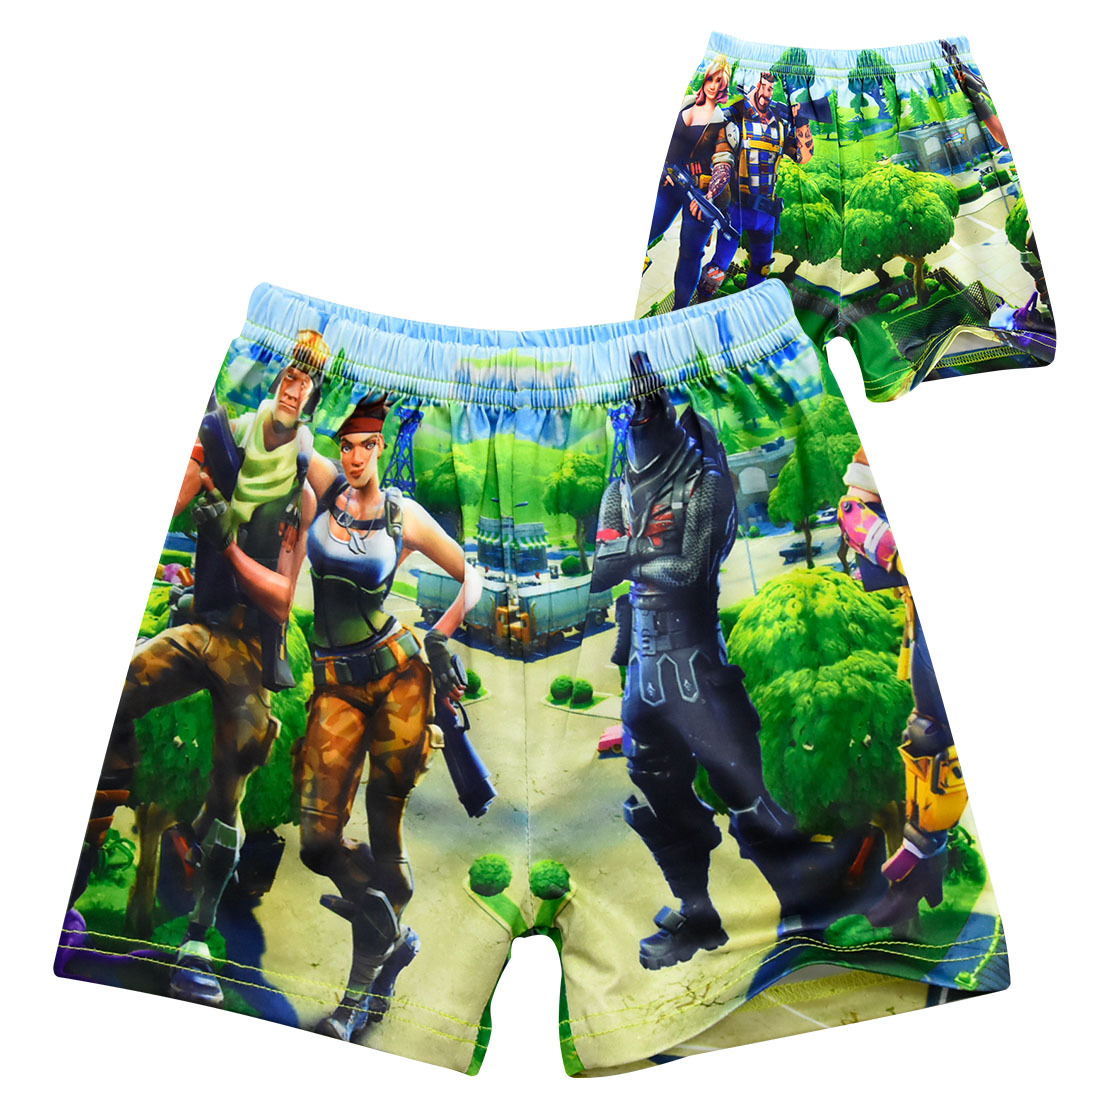 2019 New Boys Swimming Trunks Cartoon Swimsuit For Boys Summer Swim Trunk Kids Beach Wear Boy Swimwear G48-H